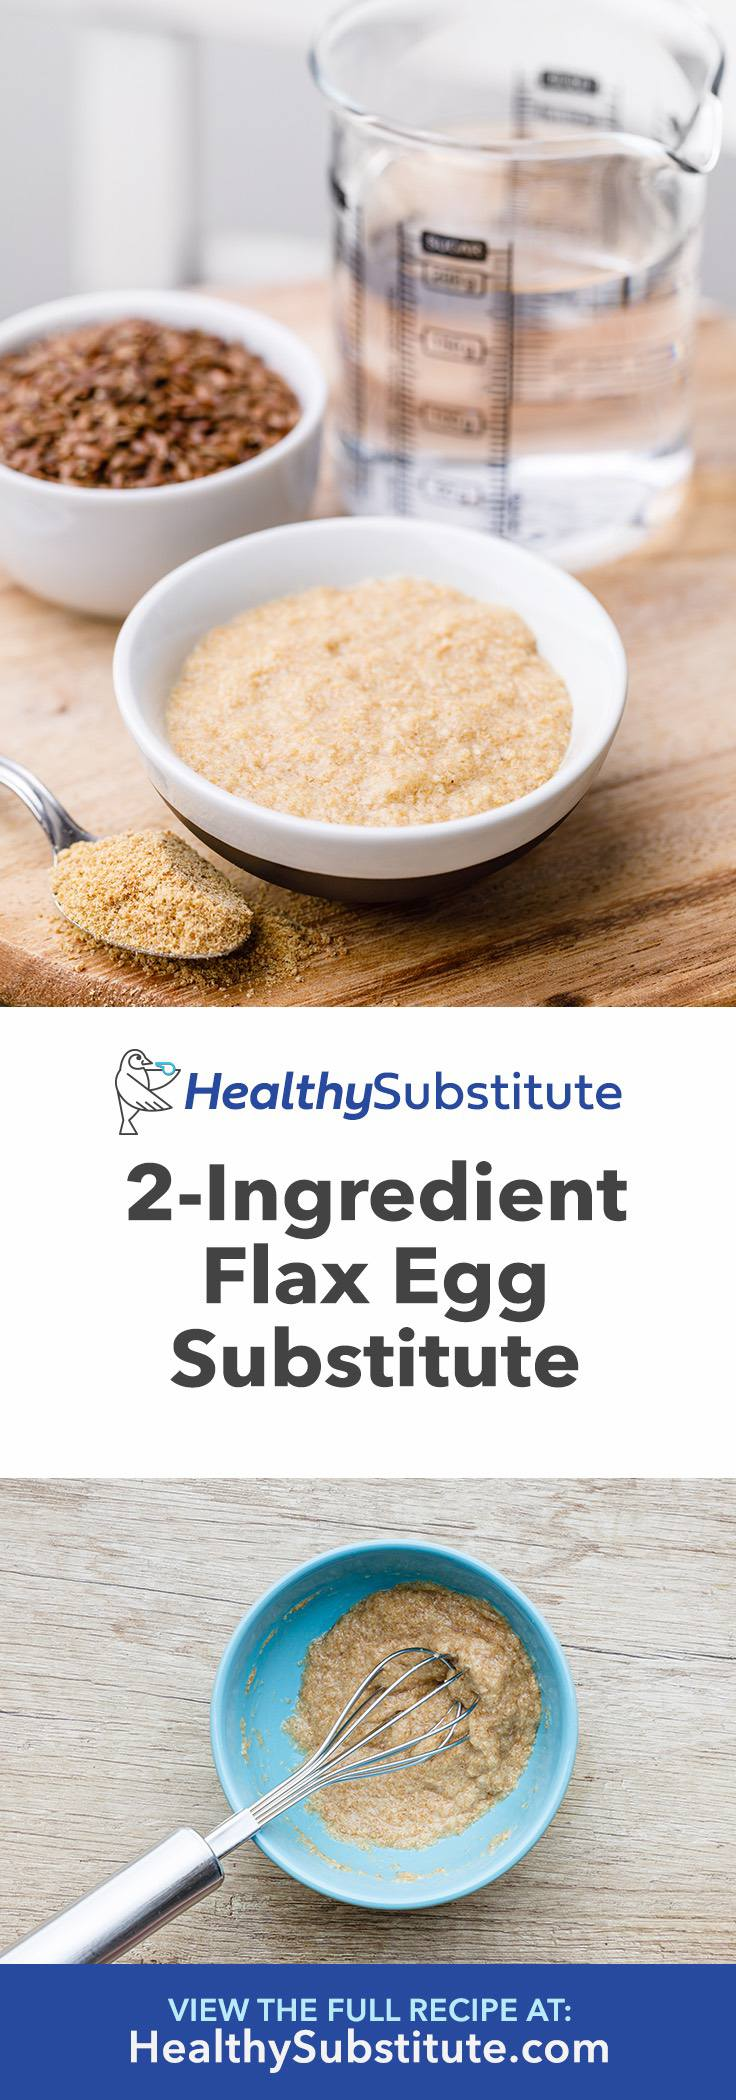 2-Ingredient Flax Egg Substitute